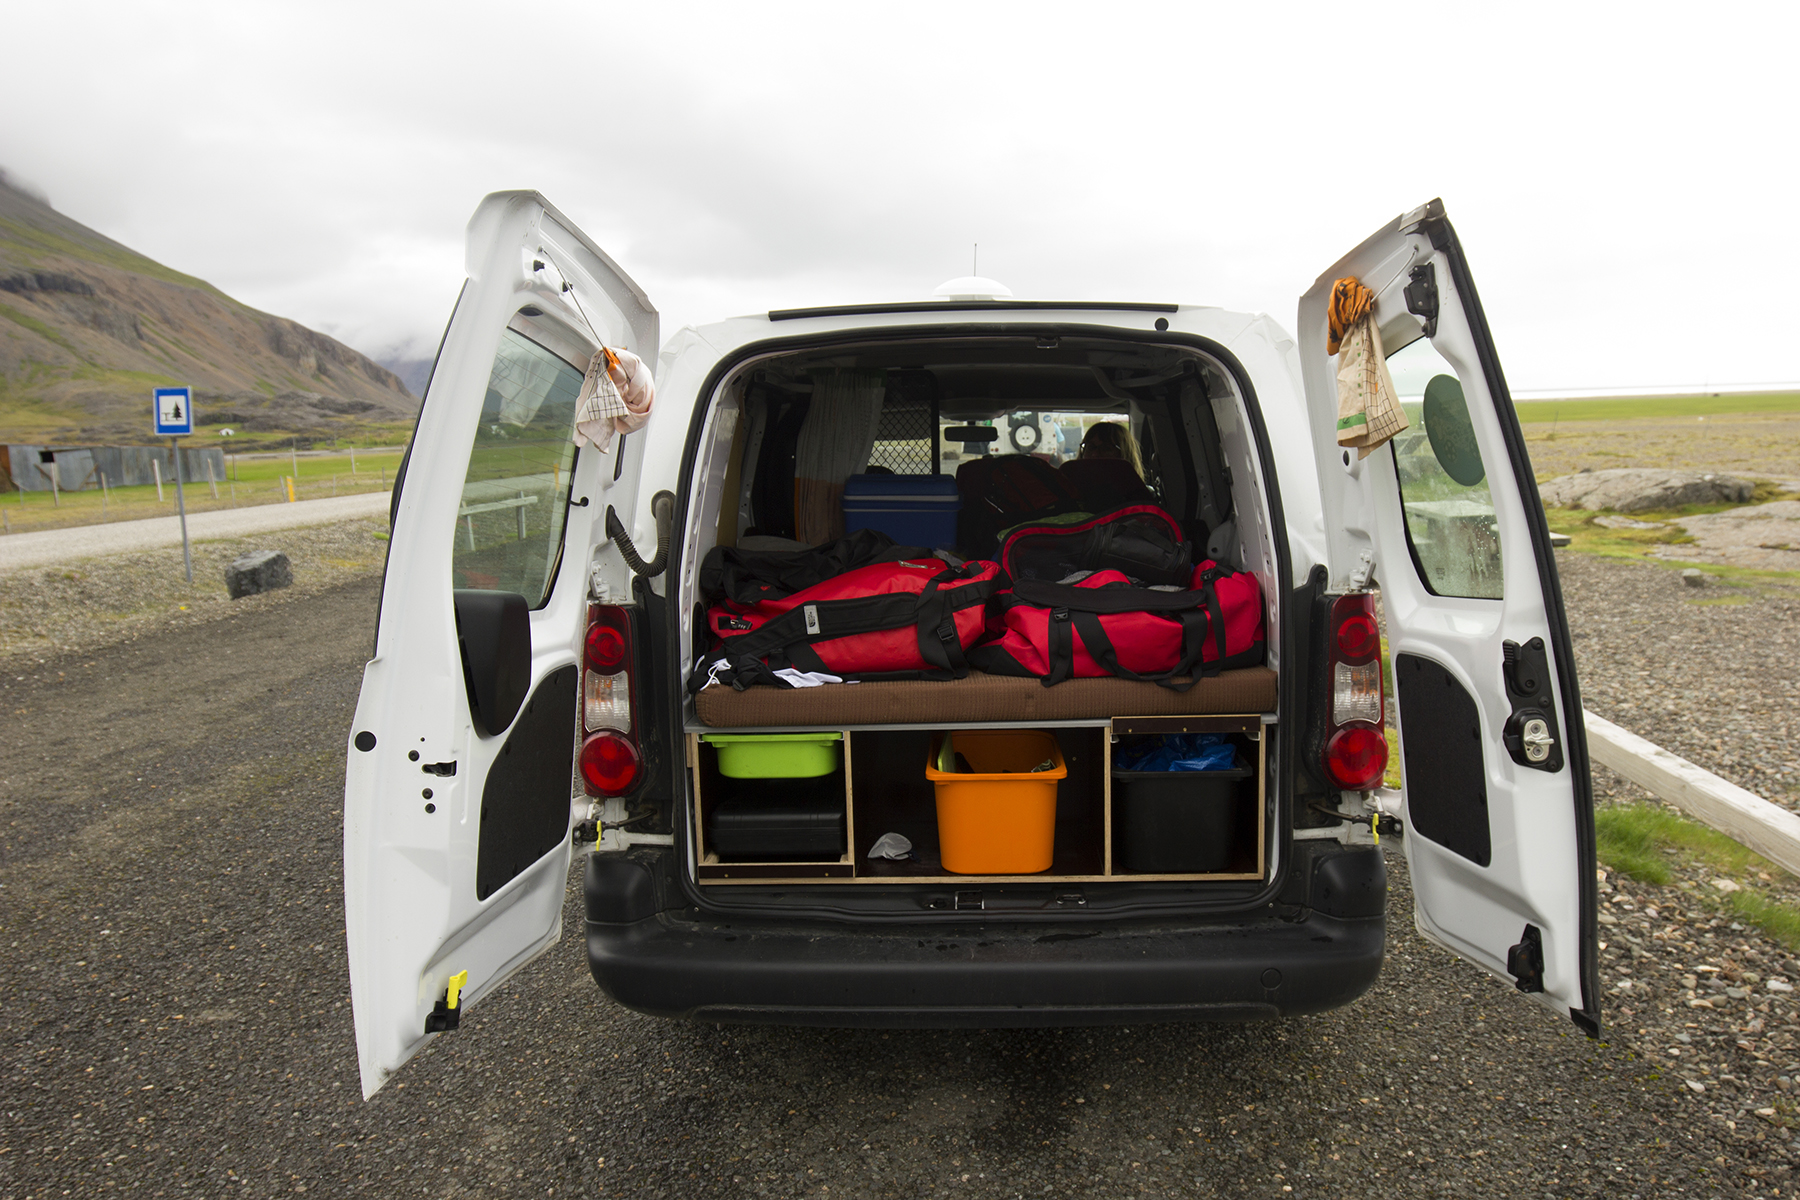 Camper van from KuKu Campers in Iceland